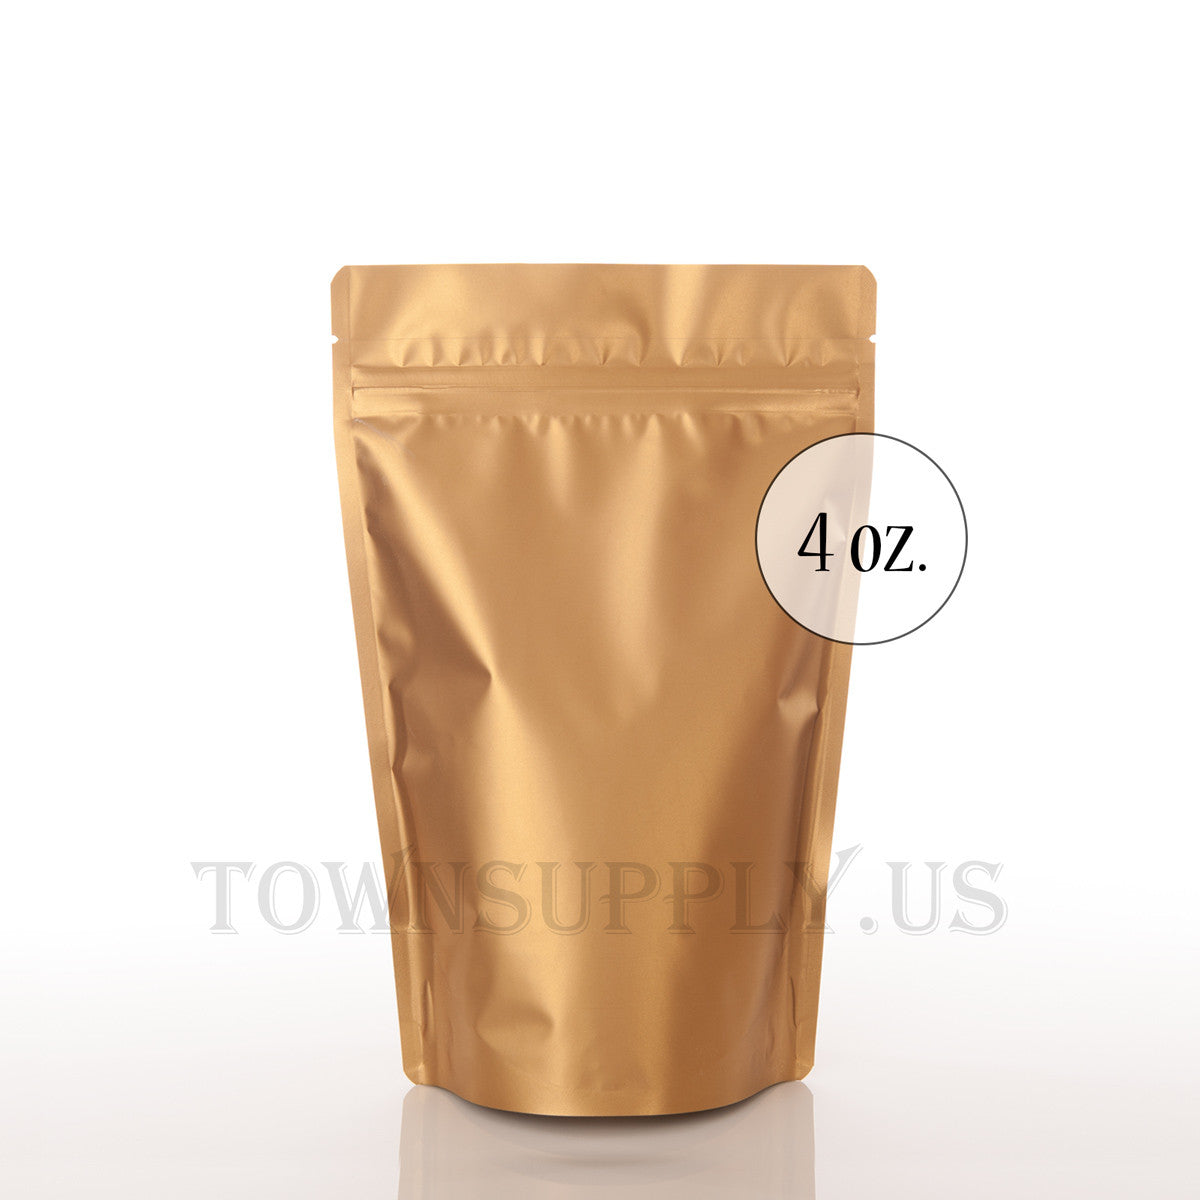 matte gold resealable stand up pouch, 4 oz. bags - Town Supply